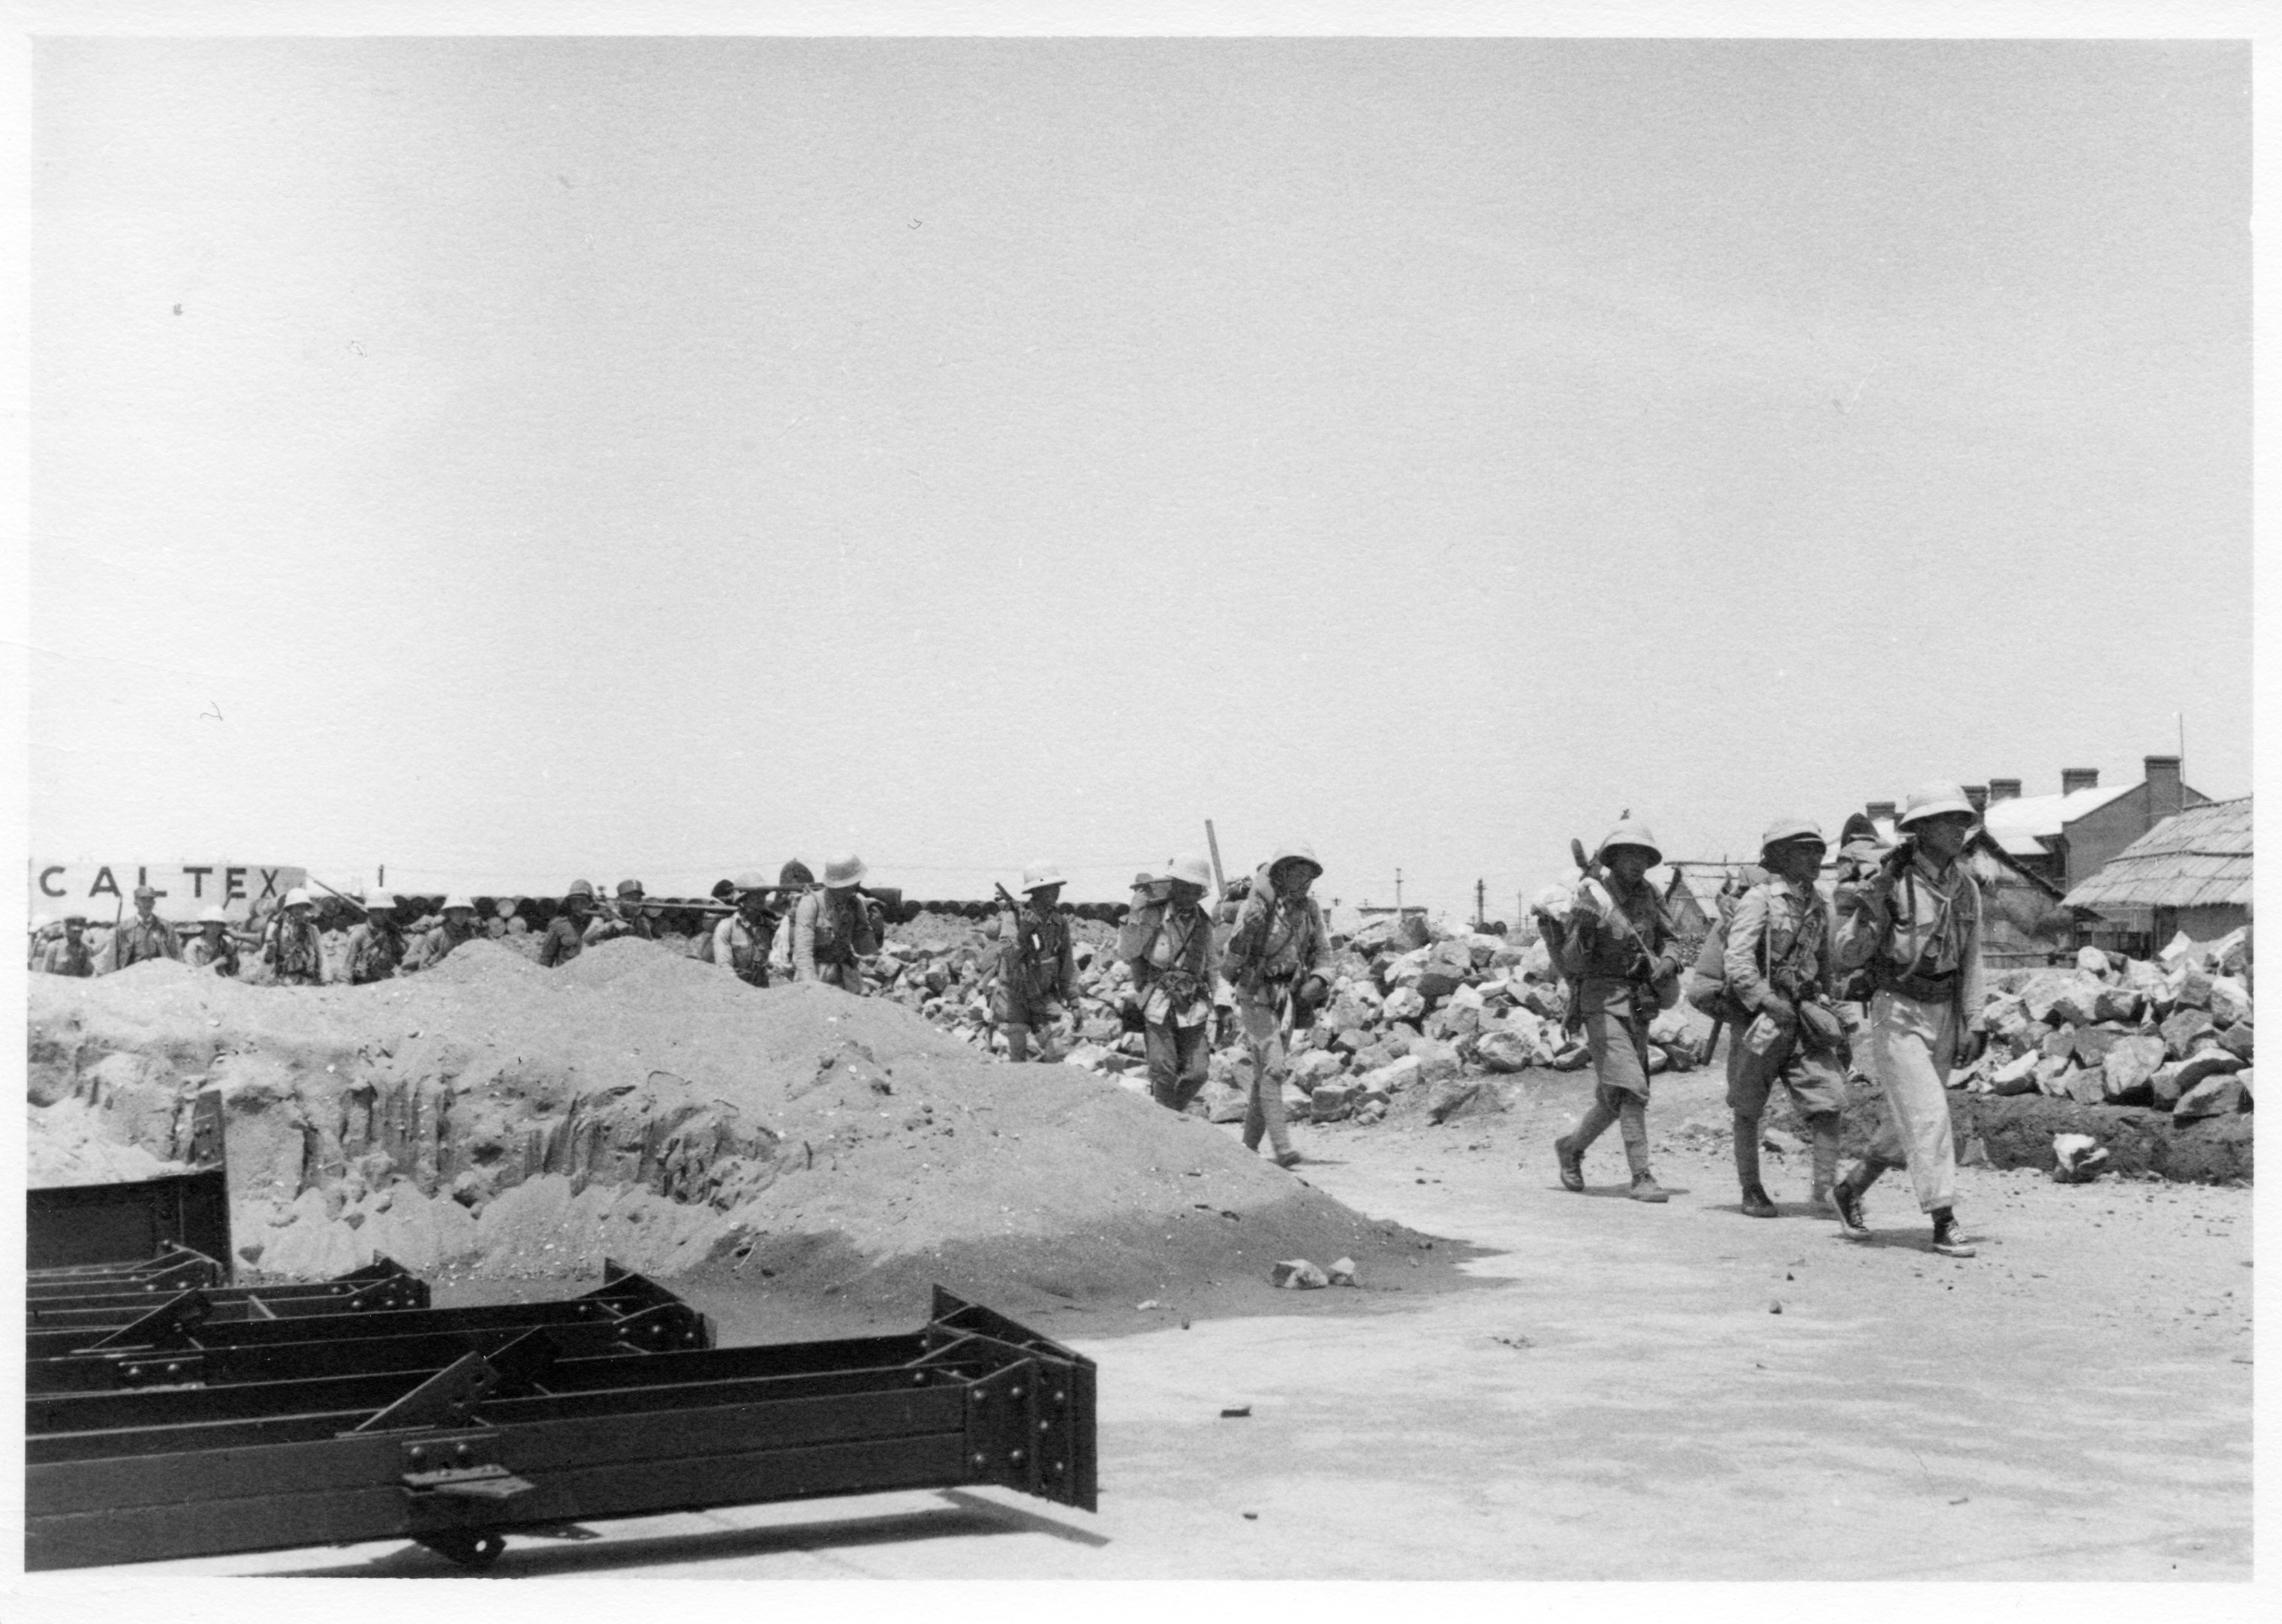 Nationalist troops march through the Caltex property to the battlefront. A Caltex oil tank is visible in the background.